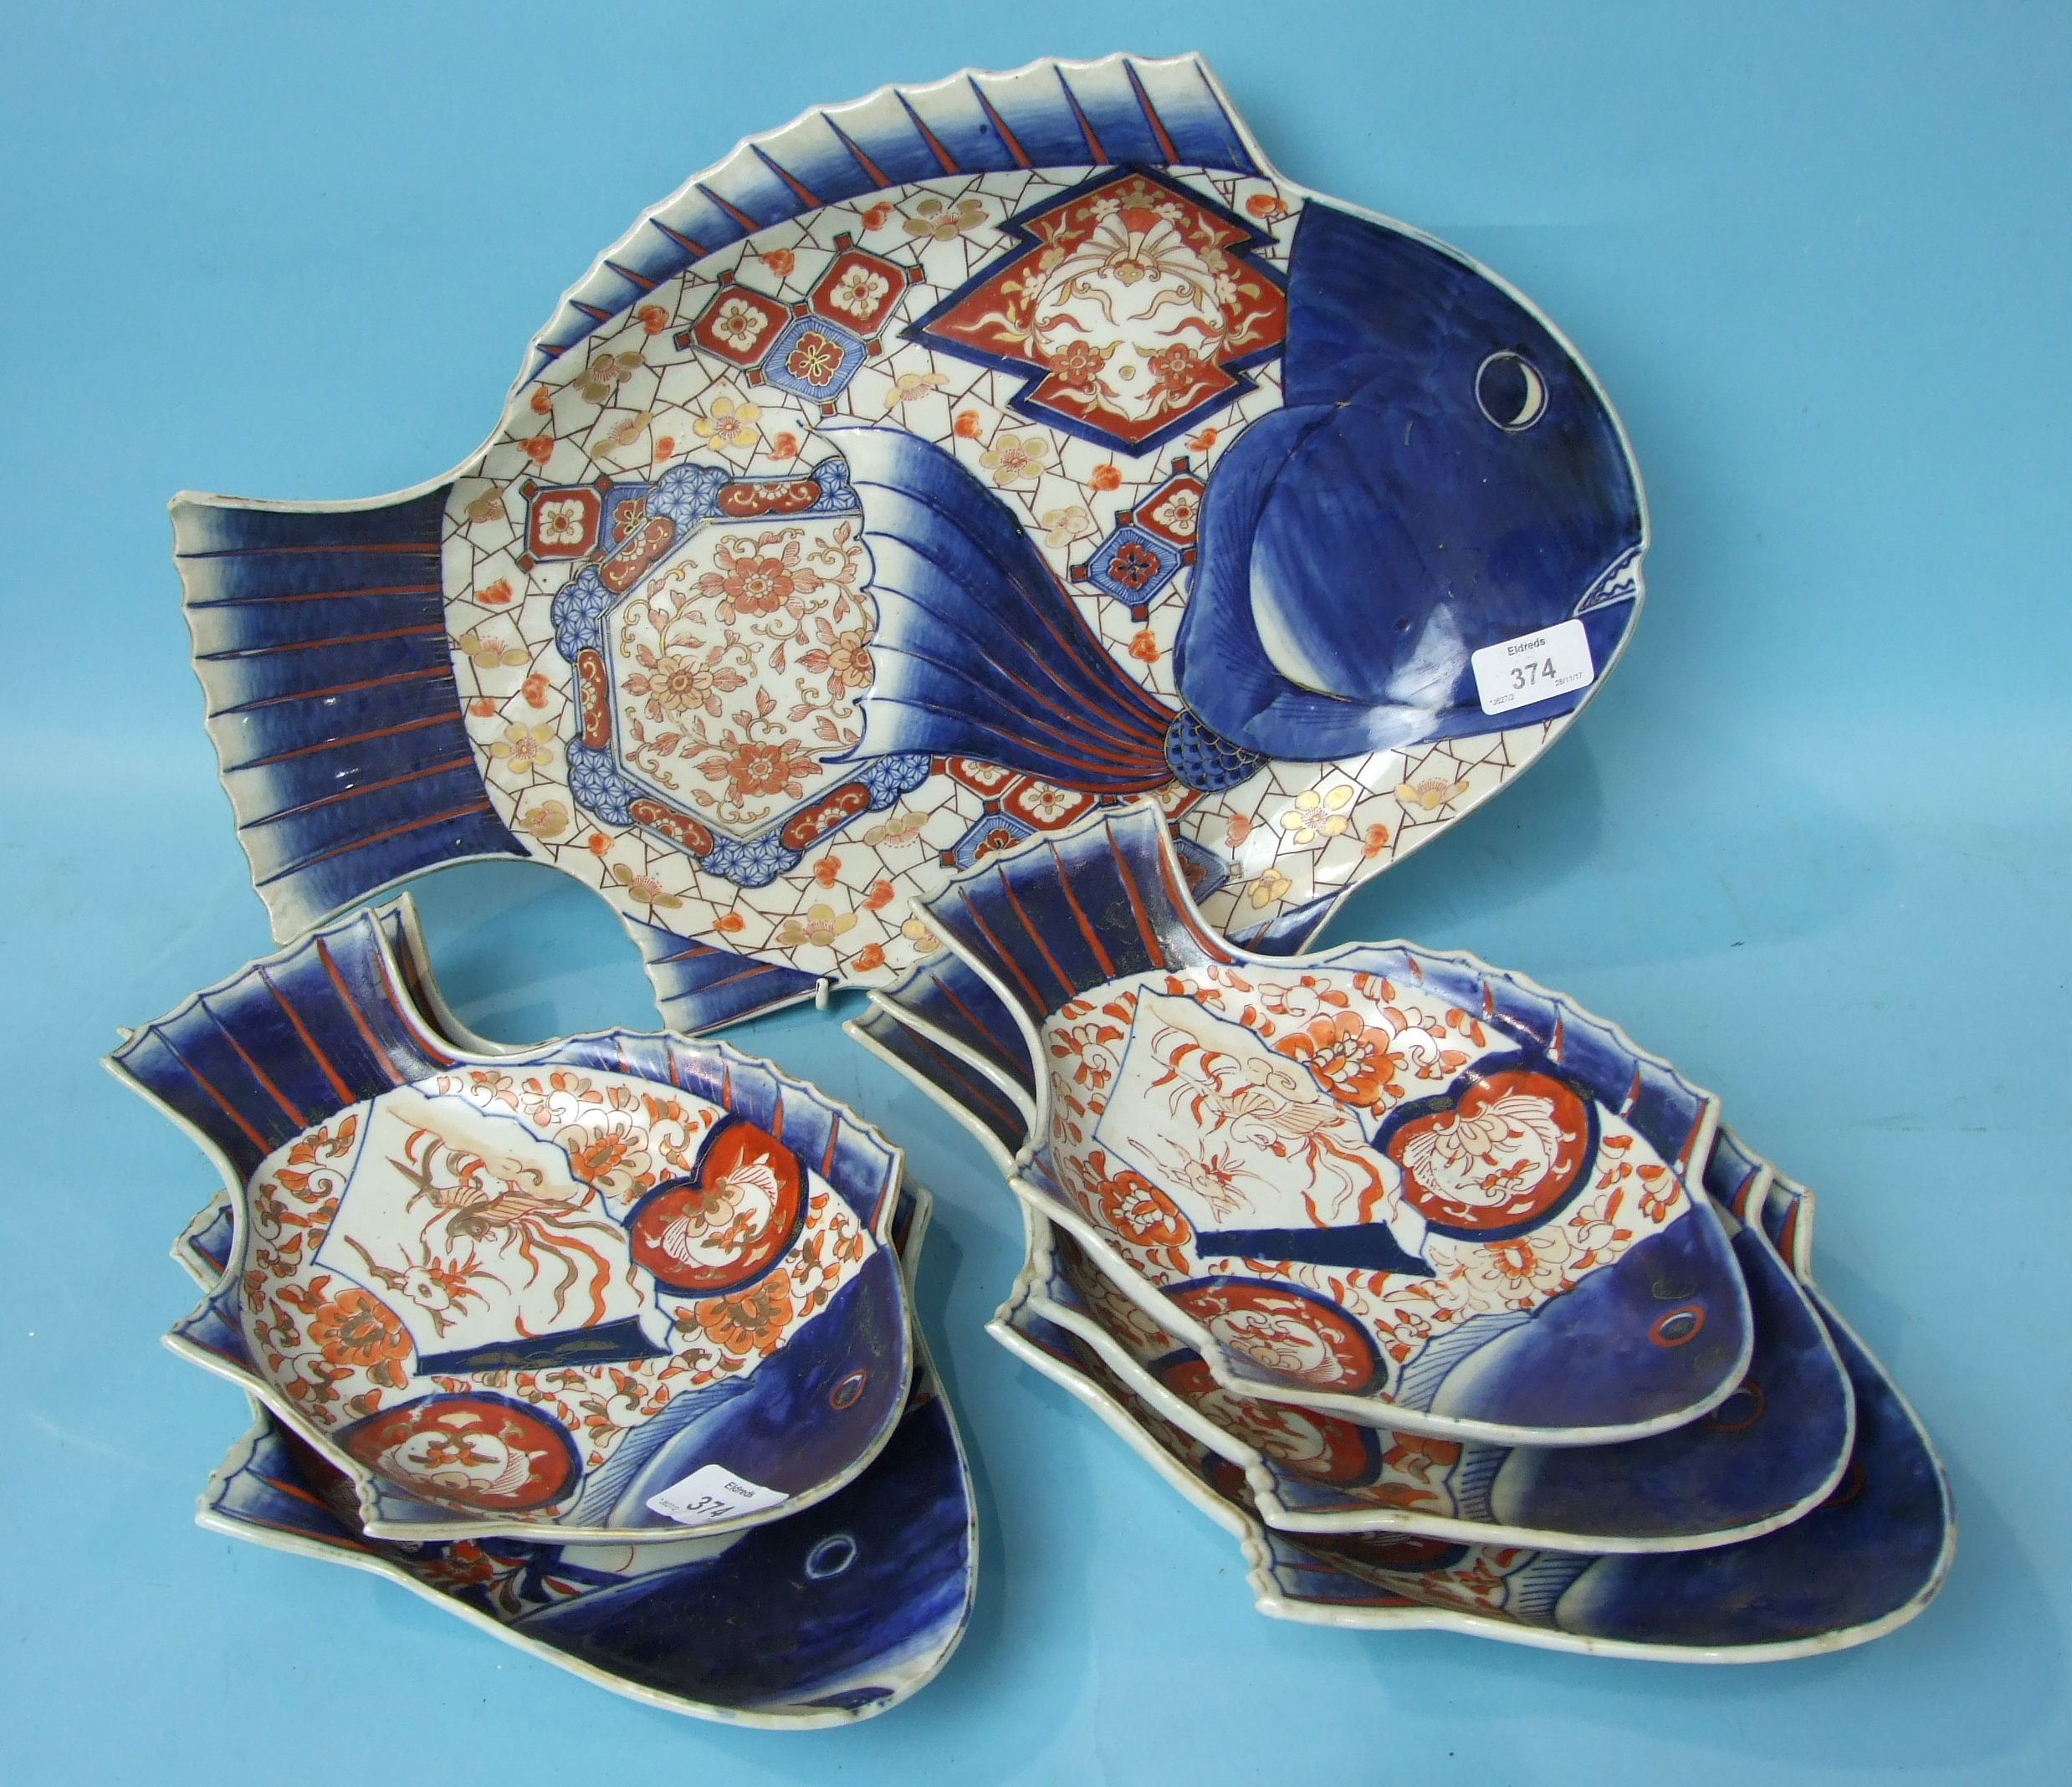 Lot 374 - A large 19th century Japanese Imari porcelain fish-shaped dish and five similar smaller dishes,